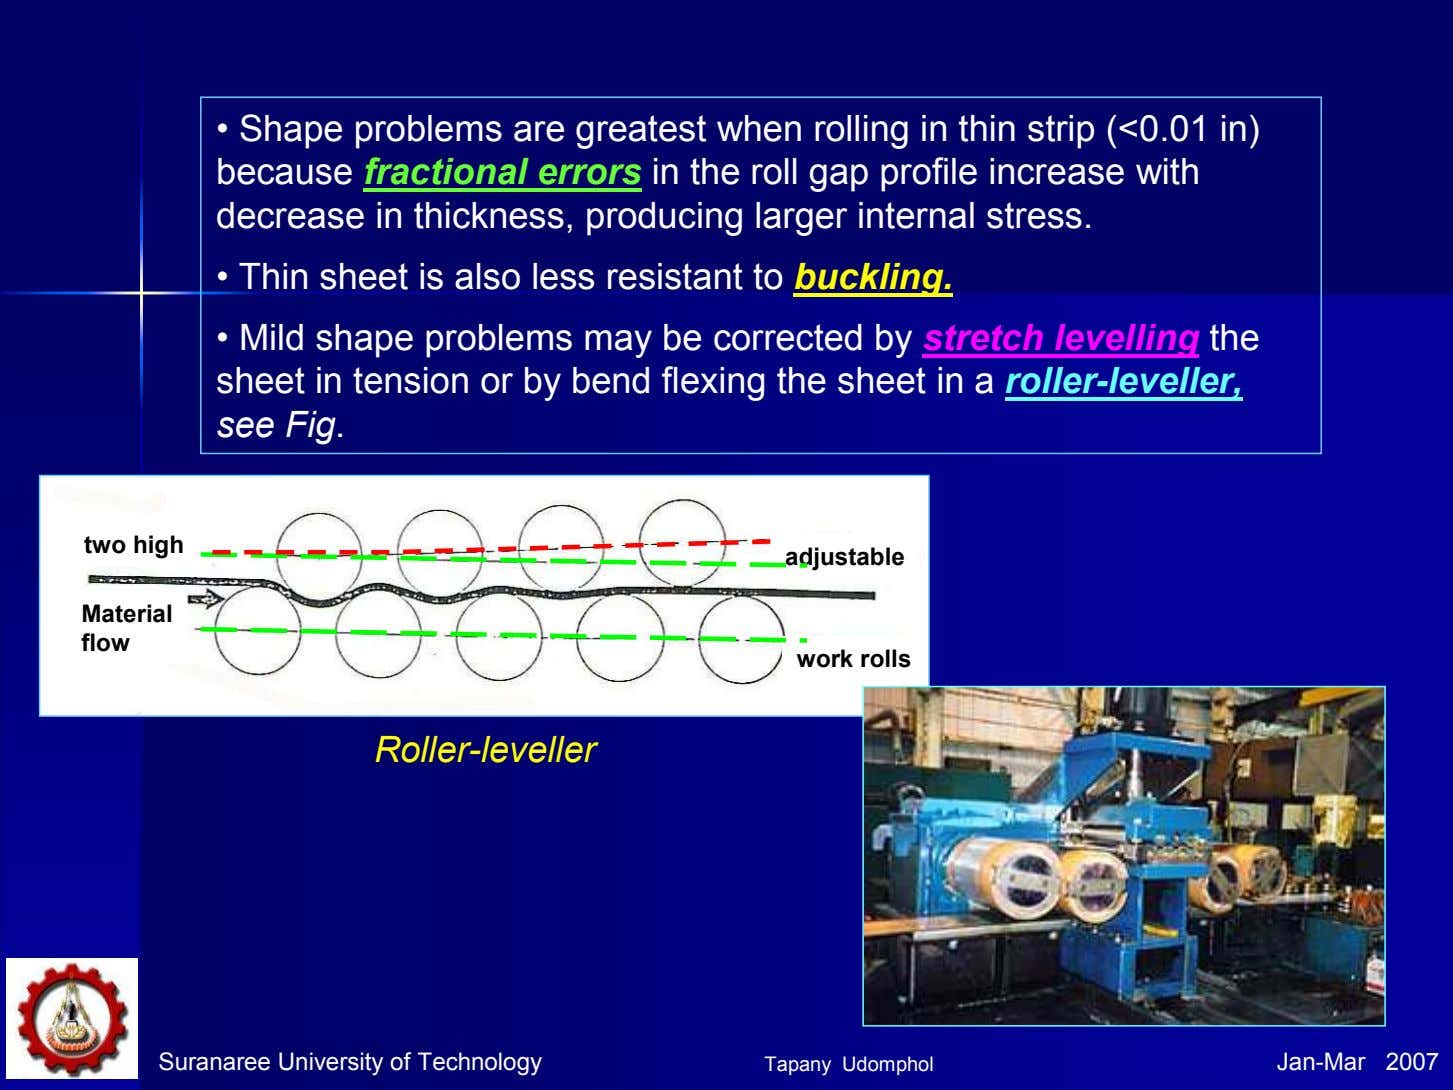 • Shape problems are greatest when rolling in thin strip (<0.01 in) because fractional errors